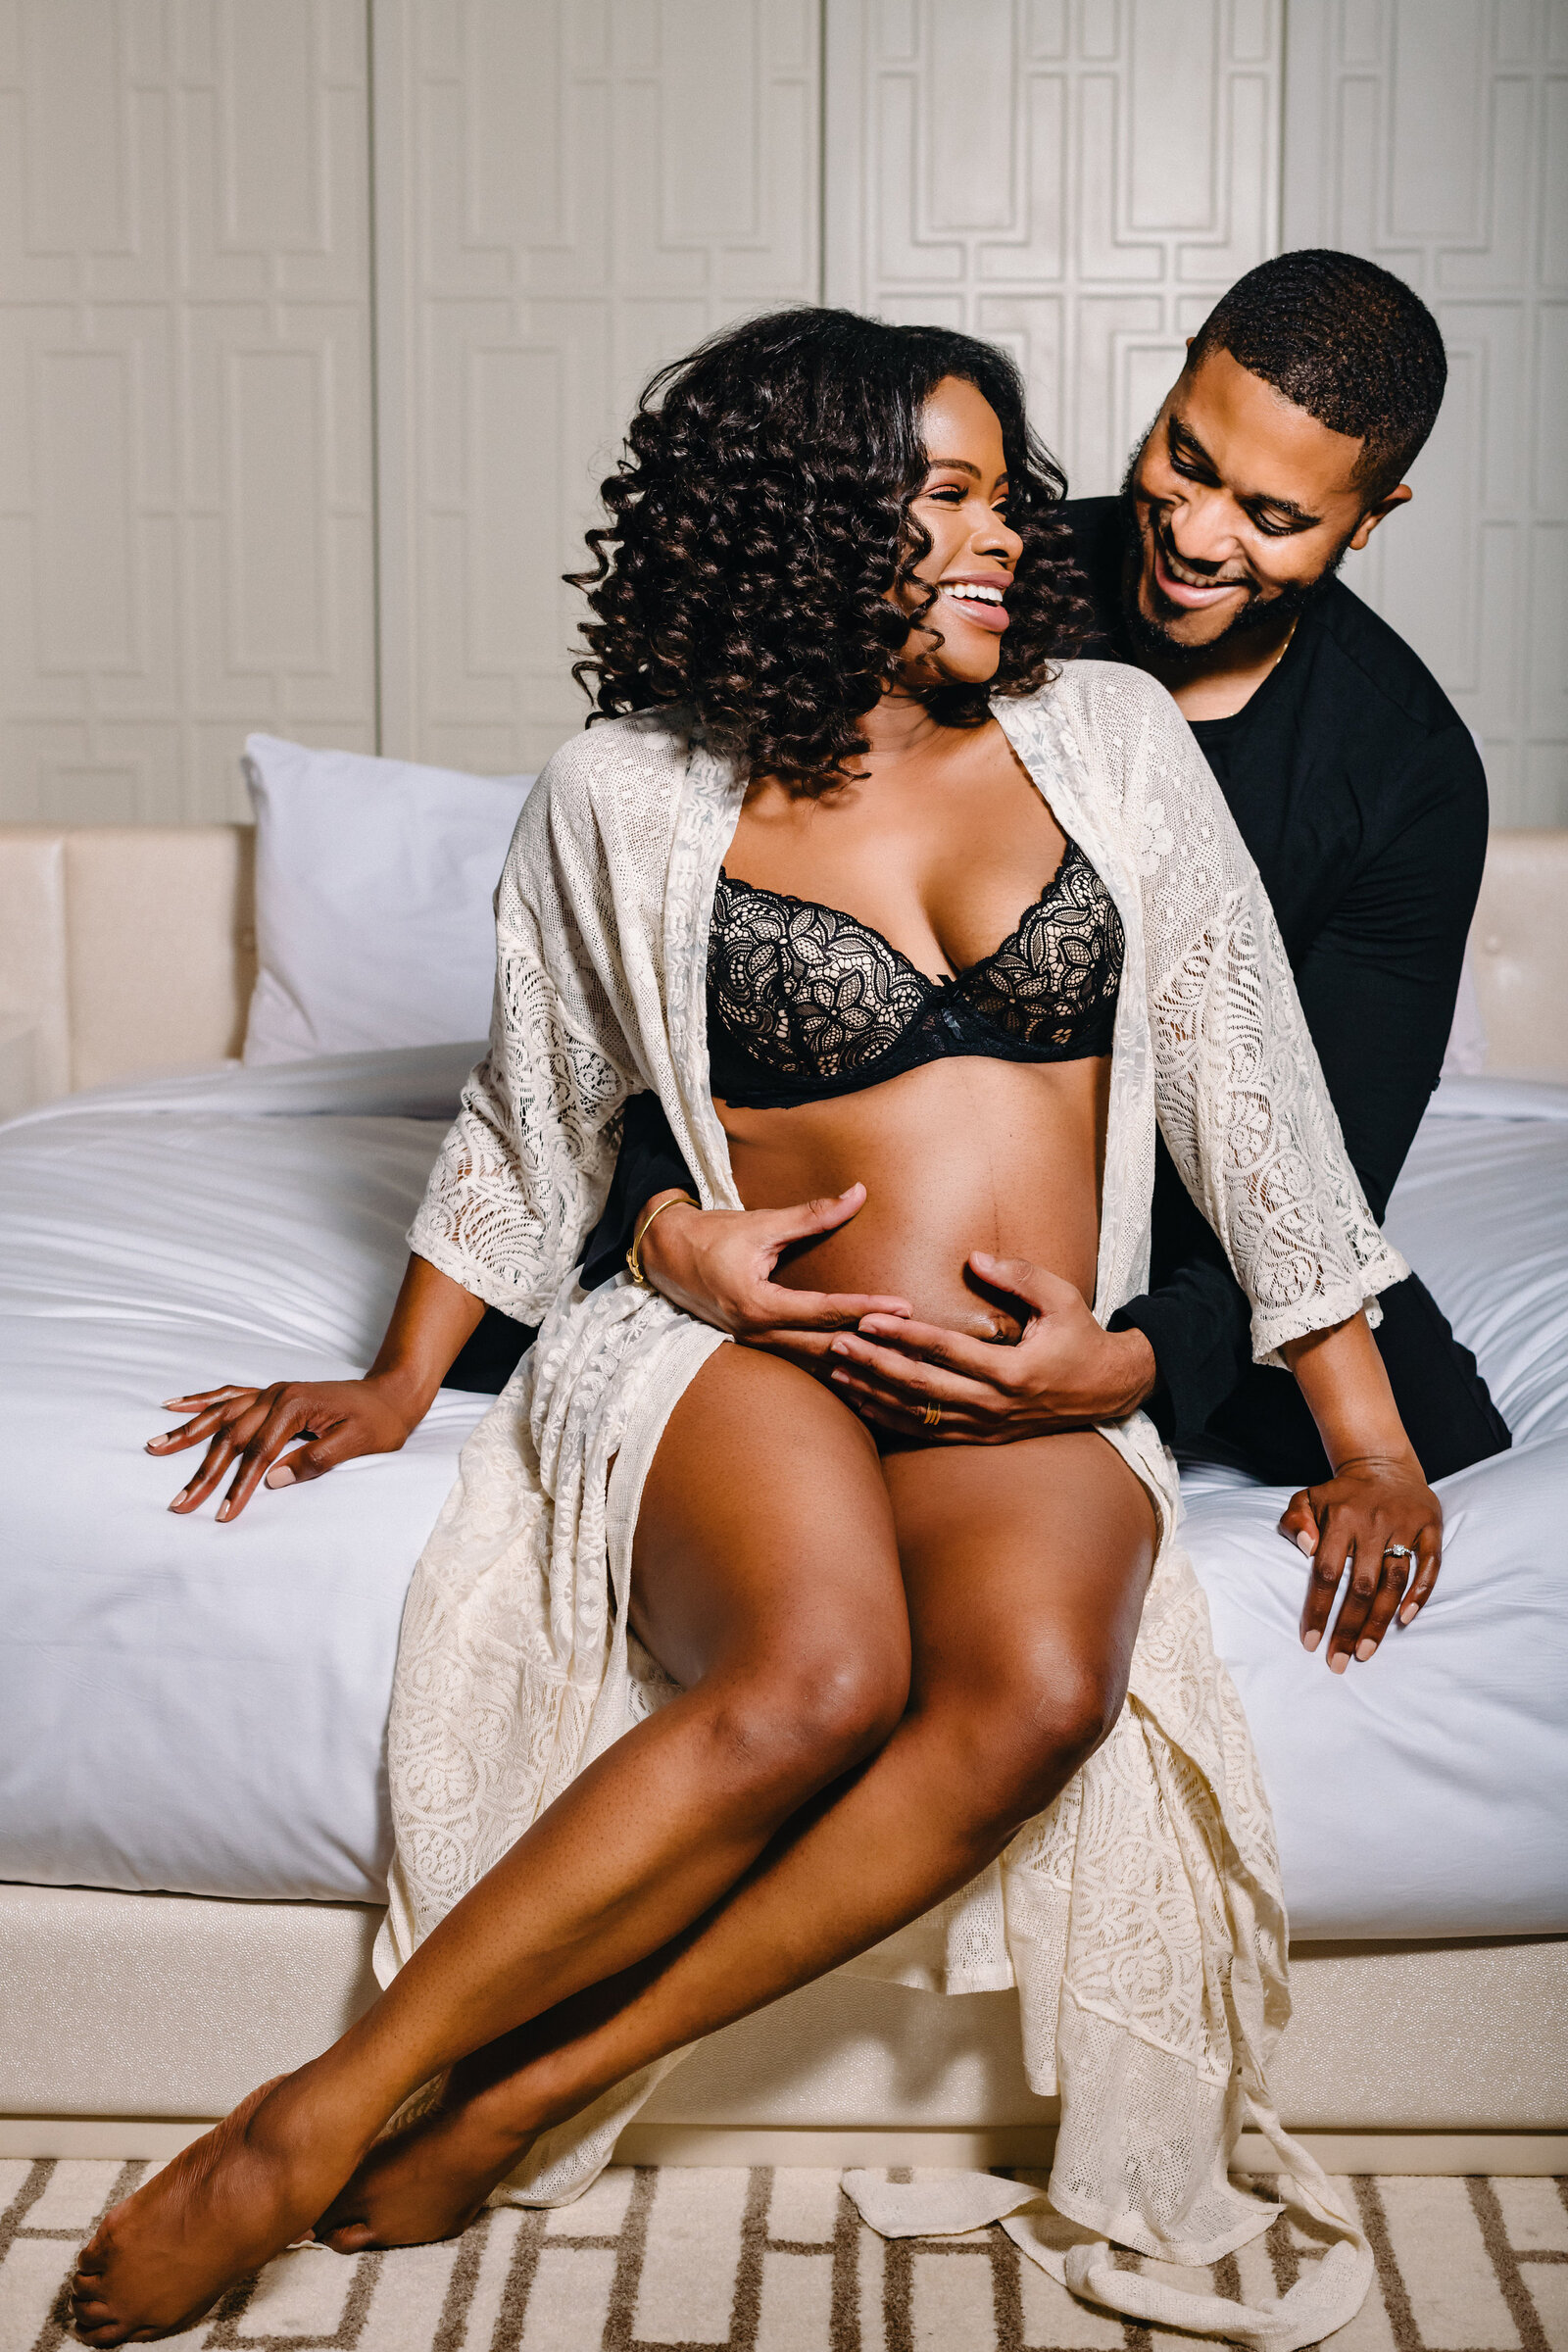 Smiling pregnant black woman with husband